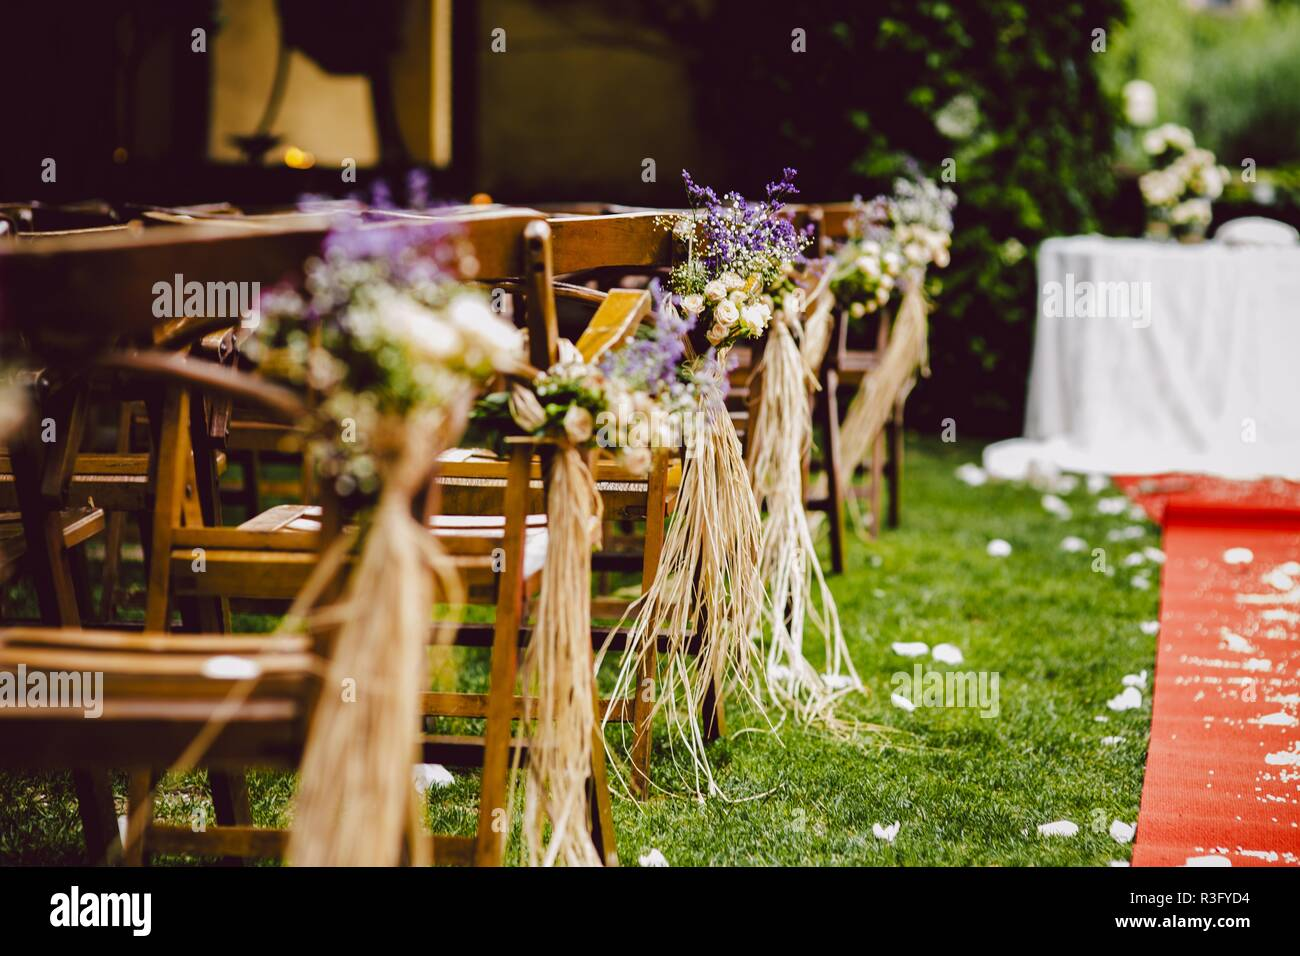 Decorations For A Rustic Outdoor Wedding With Natural Motifs And